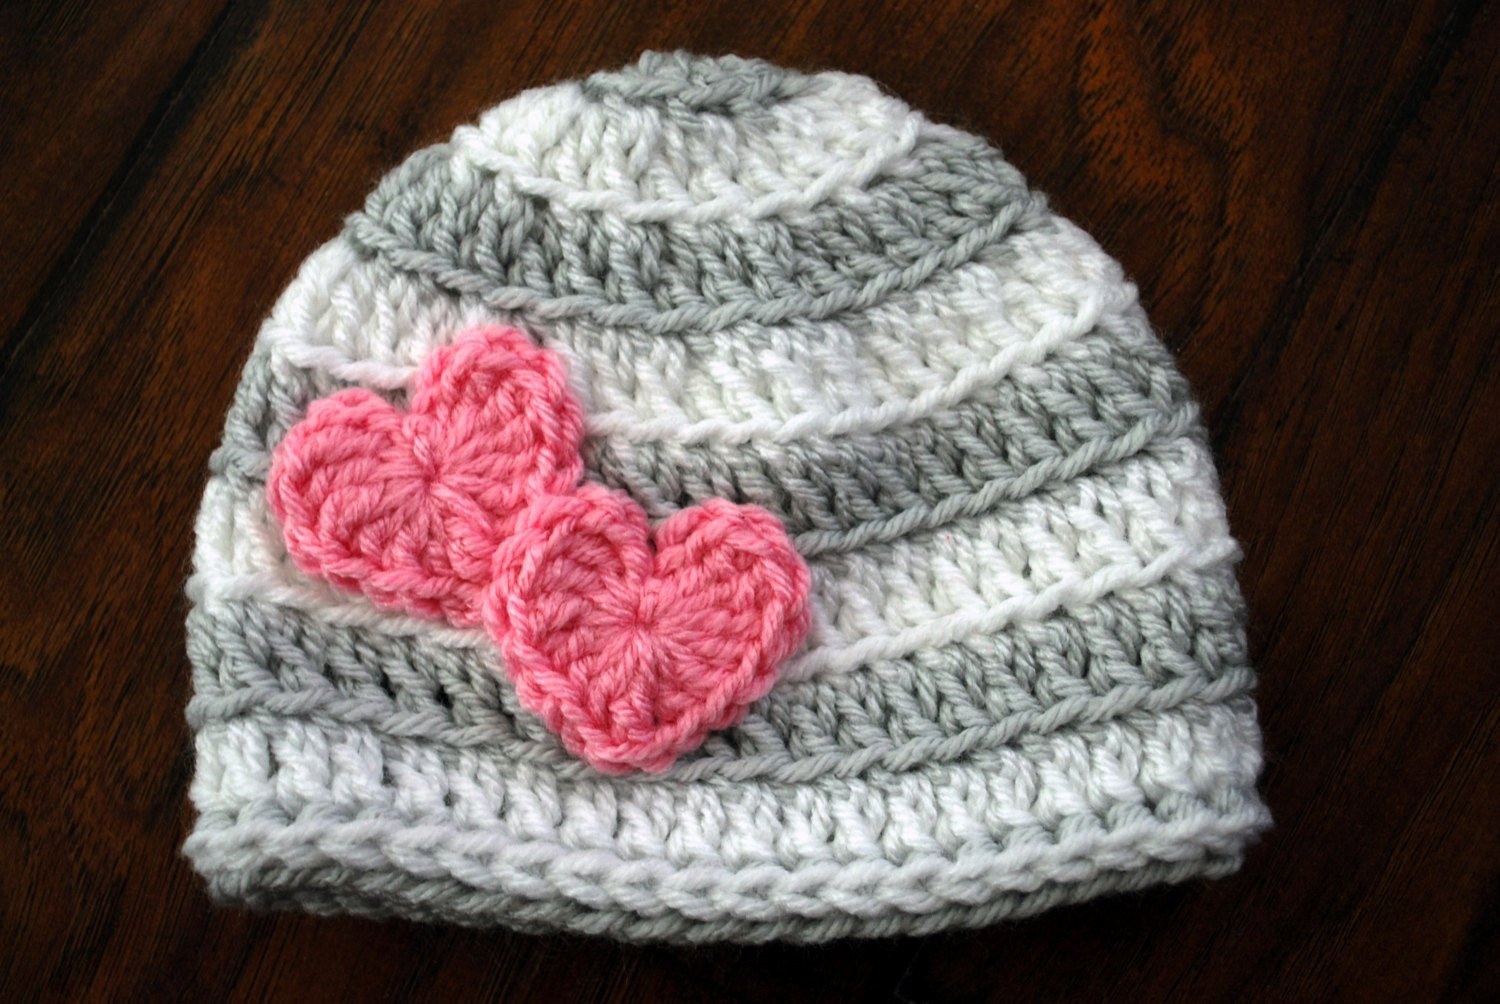 Valentine Crochet Patterns Unique Valentine Striped Crochet Hat with Hearts by Loopyslipknot Of Incredible 45 Models Valentine Crochet Patterns